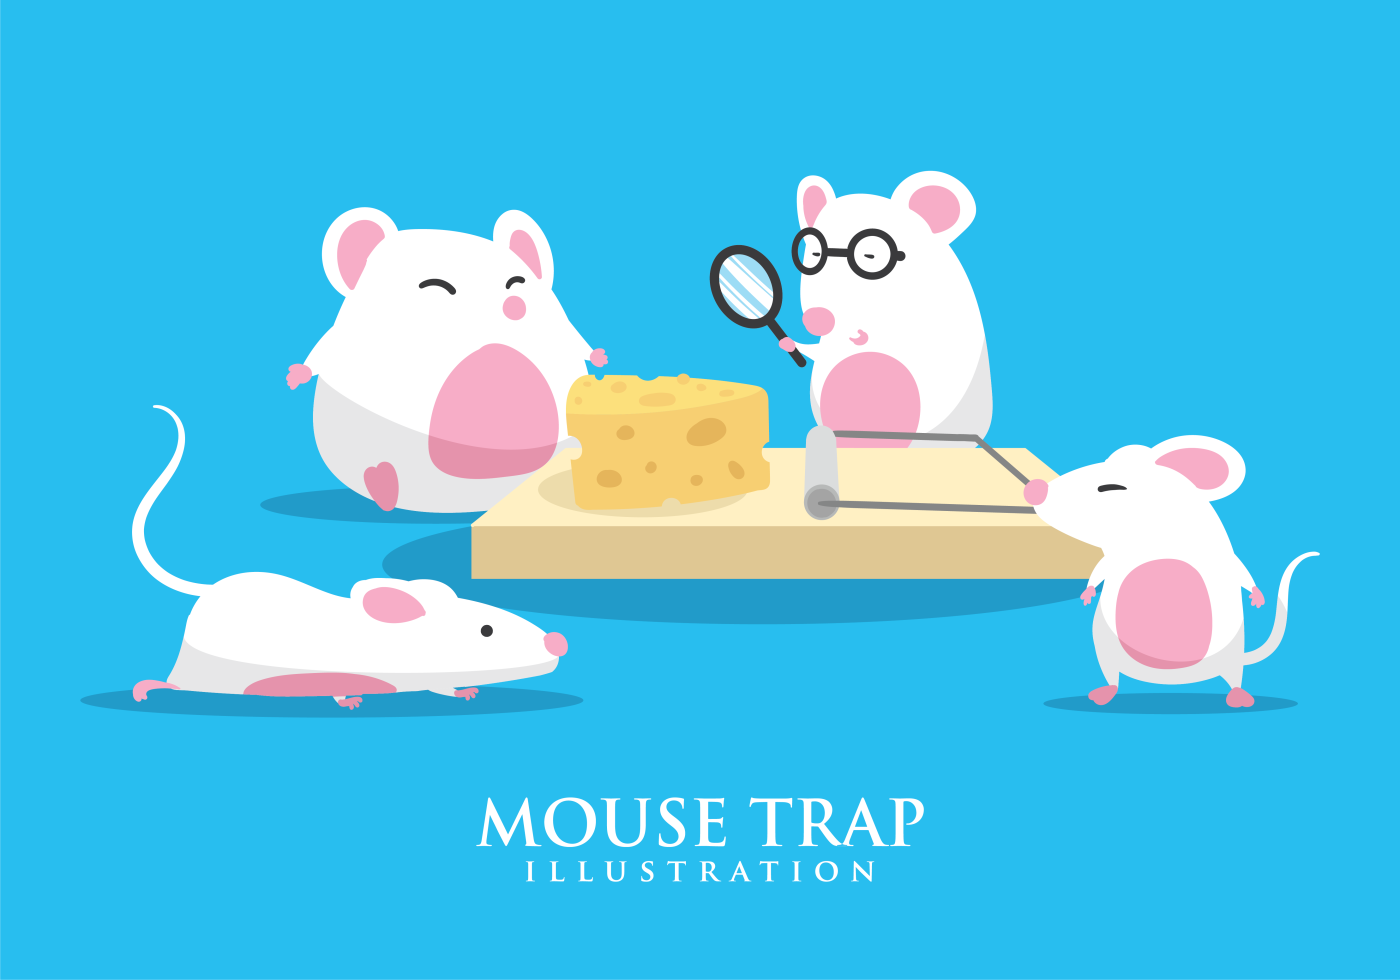 Mouse Trap Illustration - Download Free Vector Art, Stock ...